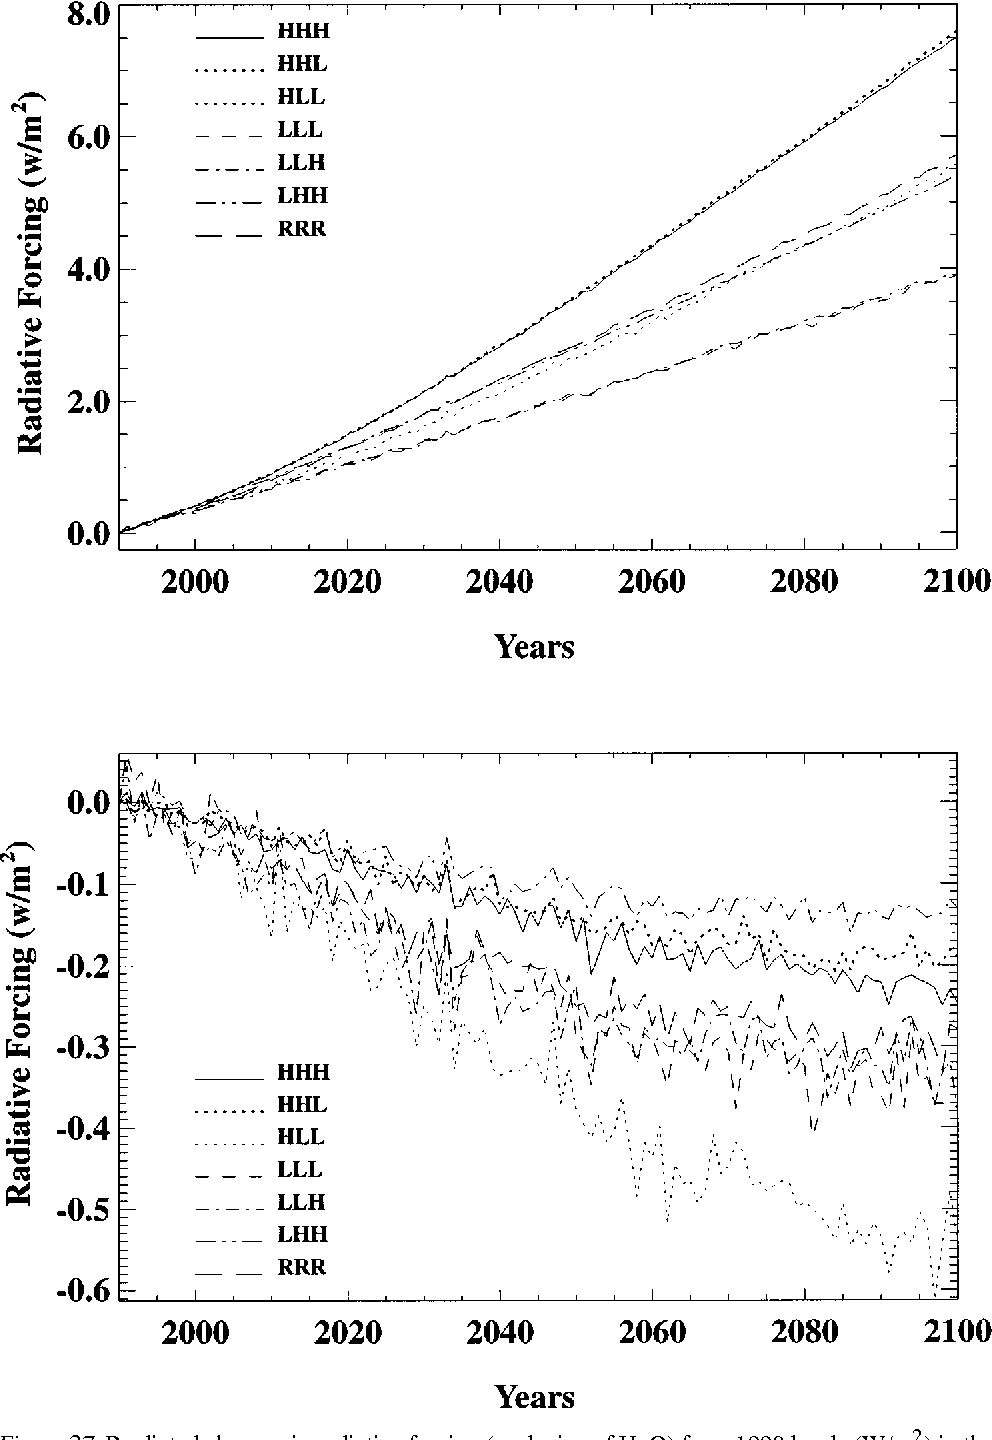 Figure 27. Predicted changes in radiative forcing (exclusive of H2O) from 1990 levels (W/m 2) in the seven sensitivity runs. The upper set of curves refers to all gases and aerosols and the lower set to aerosols alone. See Figure 23 for run nomenclature.